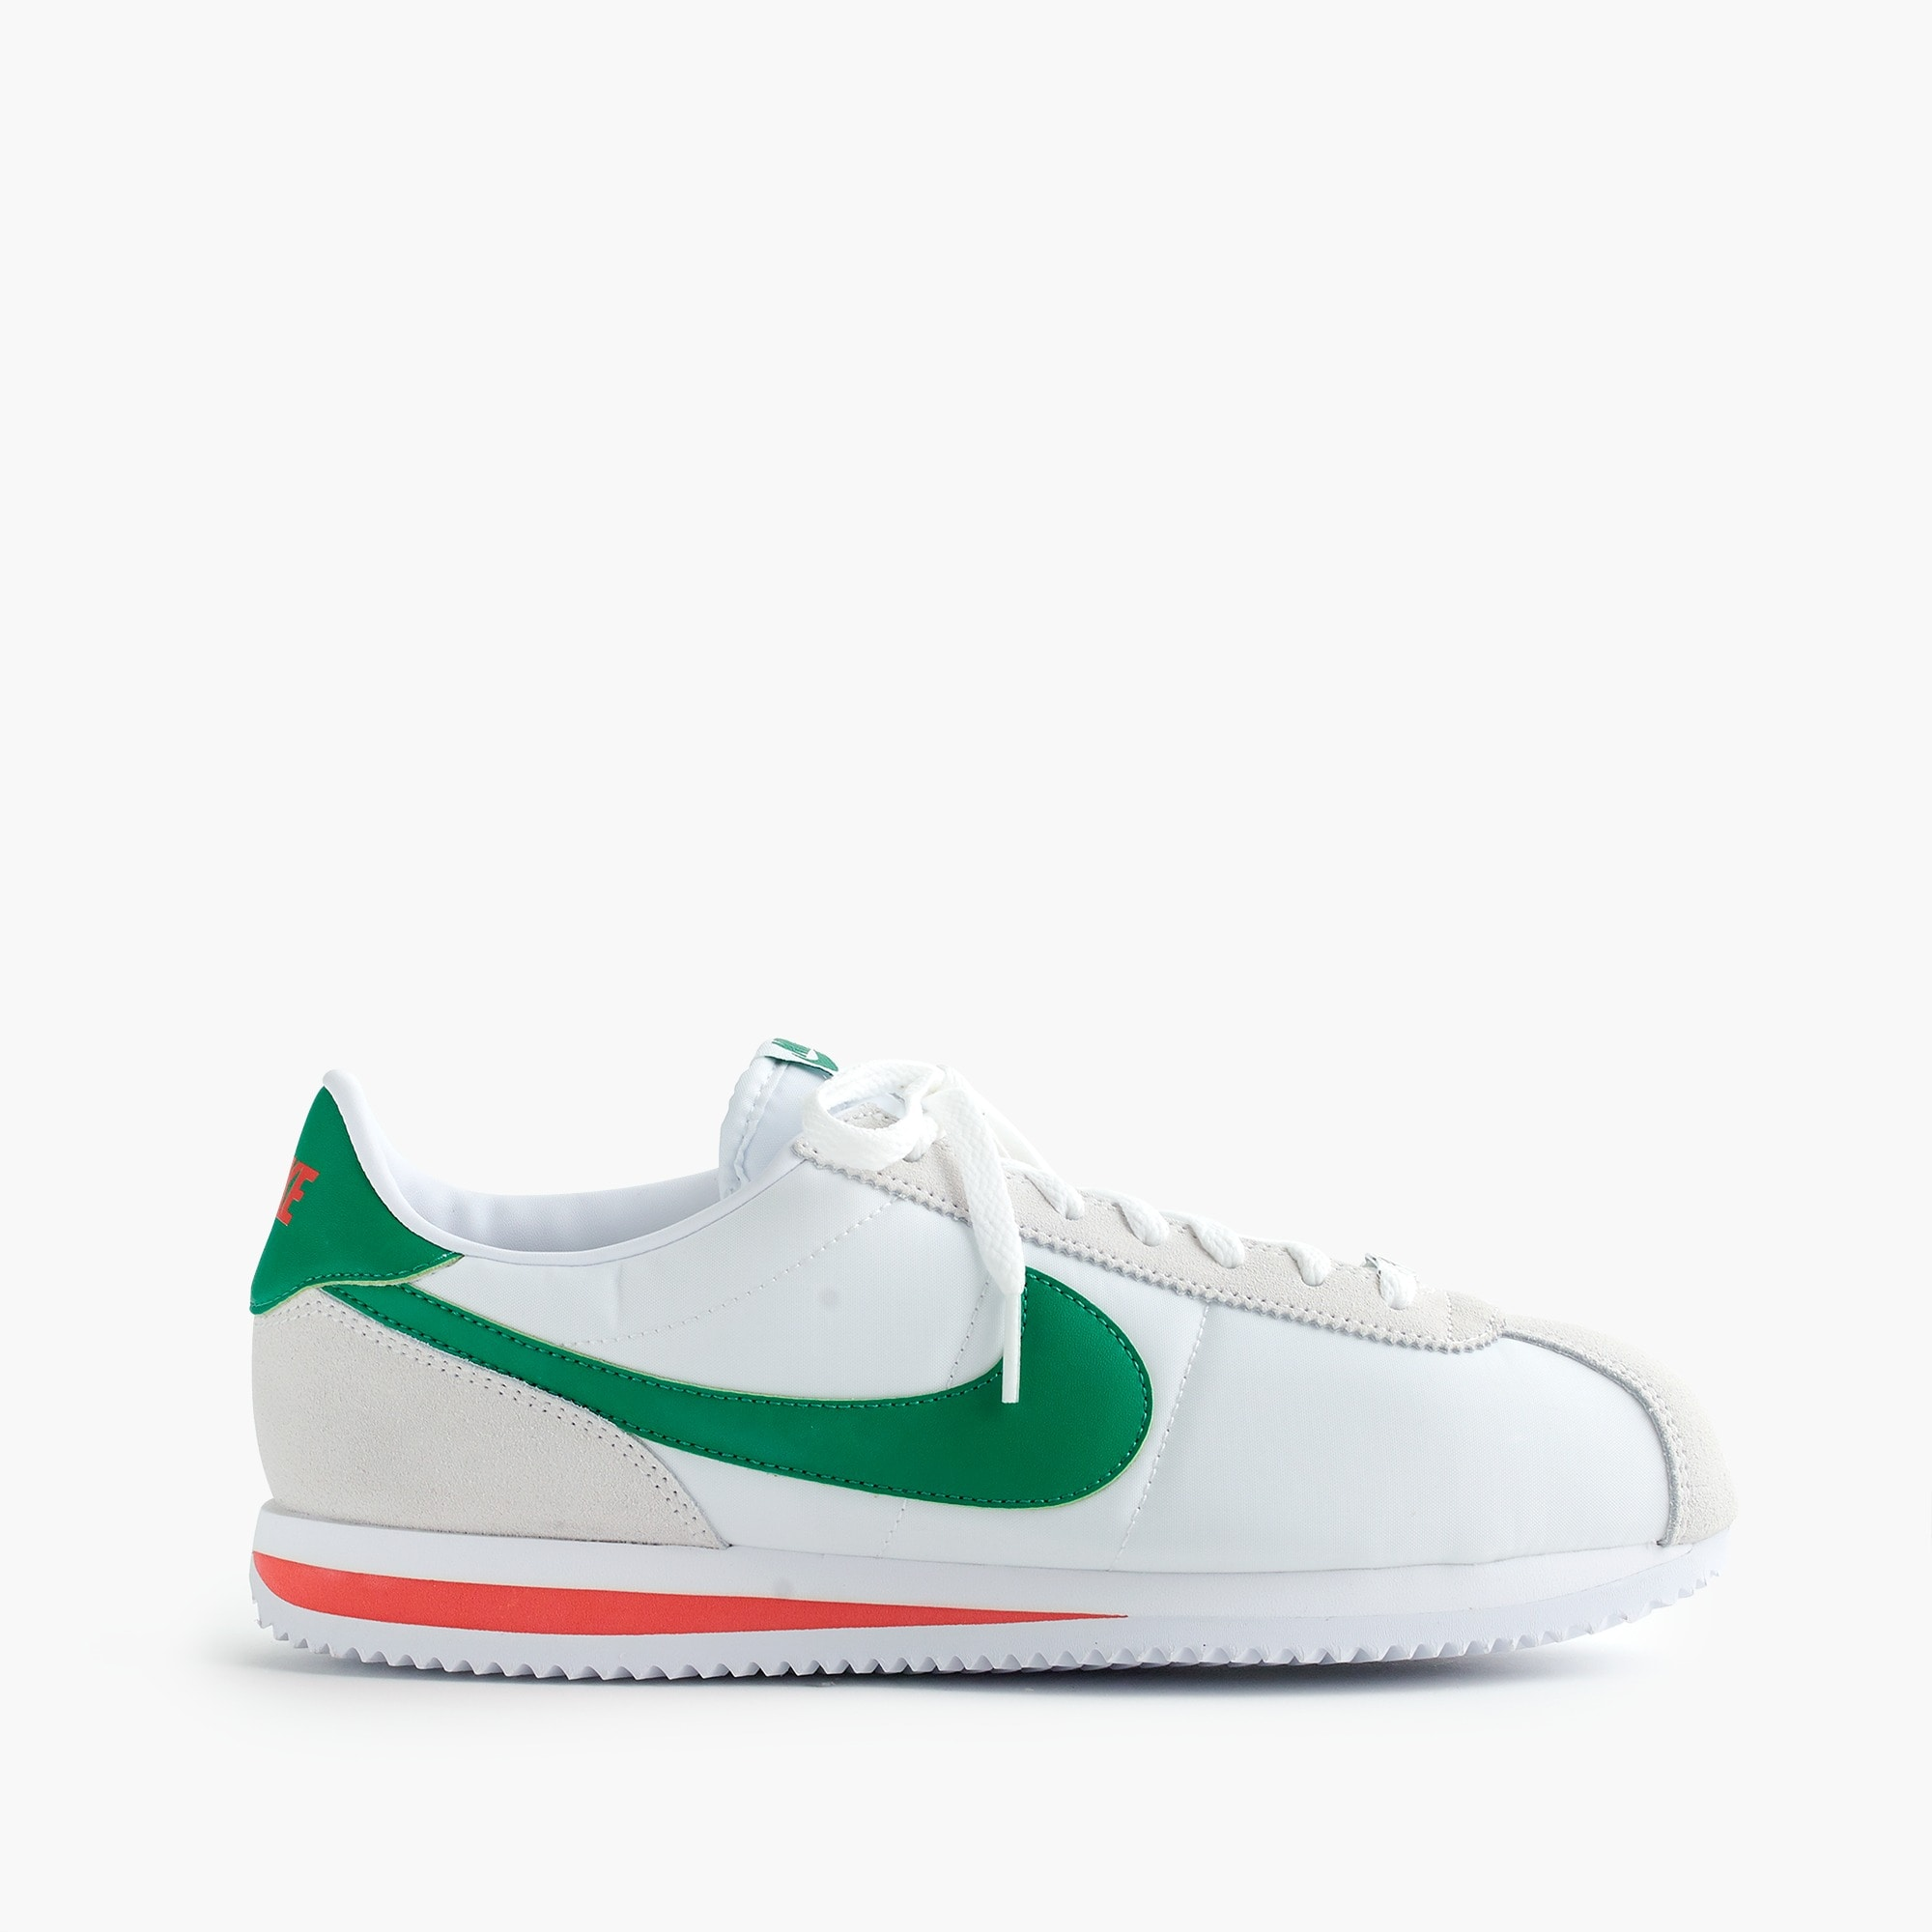 Image 3 for Nike® Cortez sneakers in white nylon